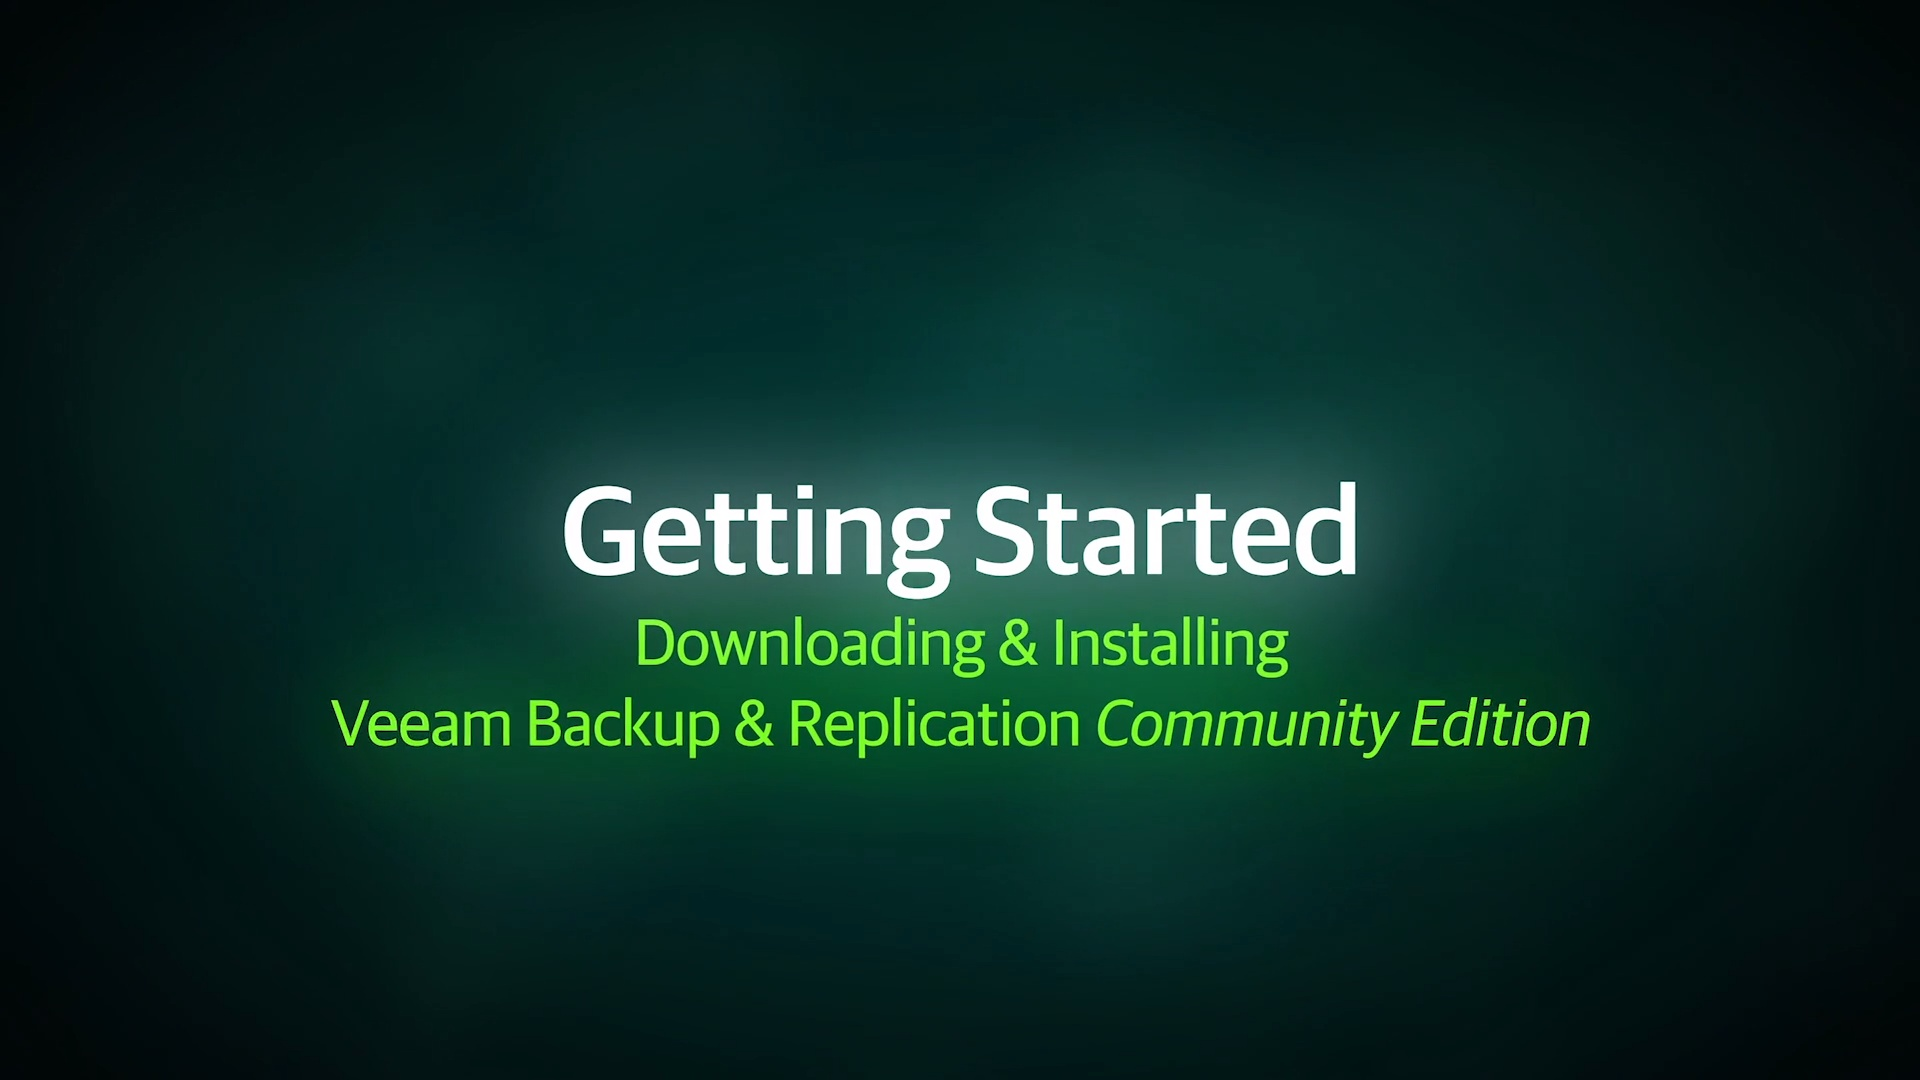 Downloading and Installing Veeam Backup & Replication Community Edition